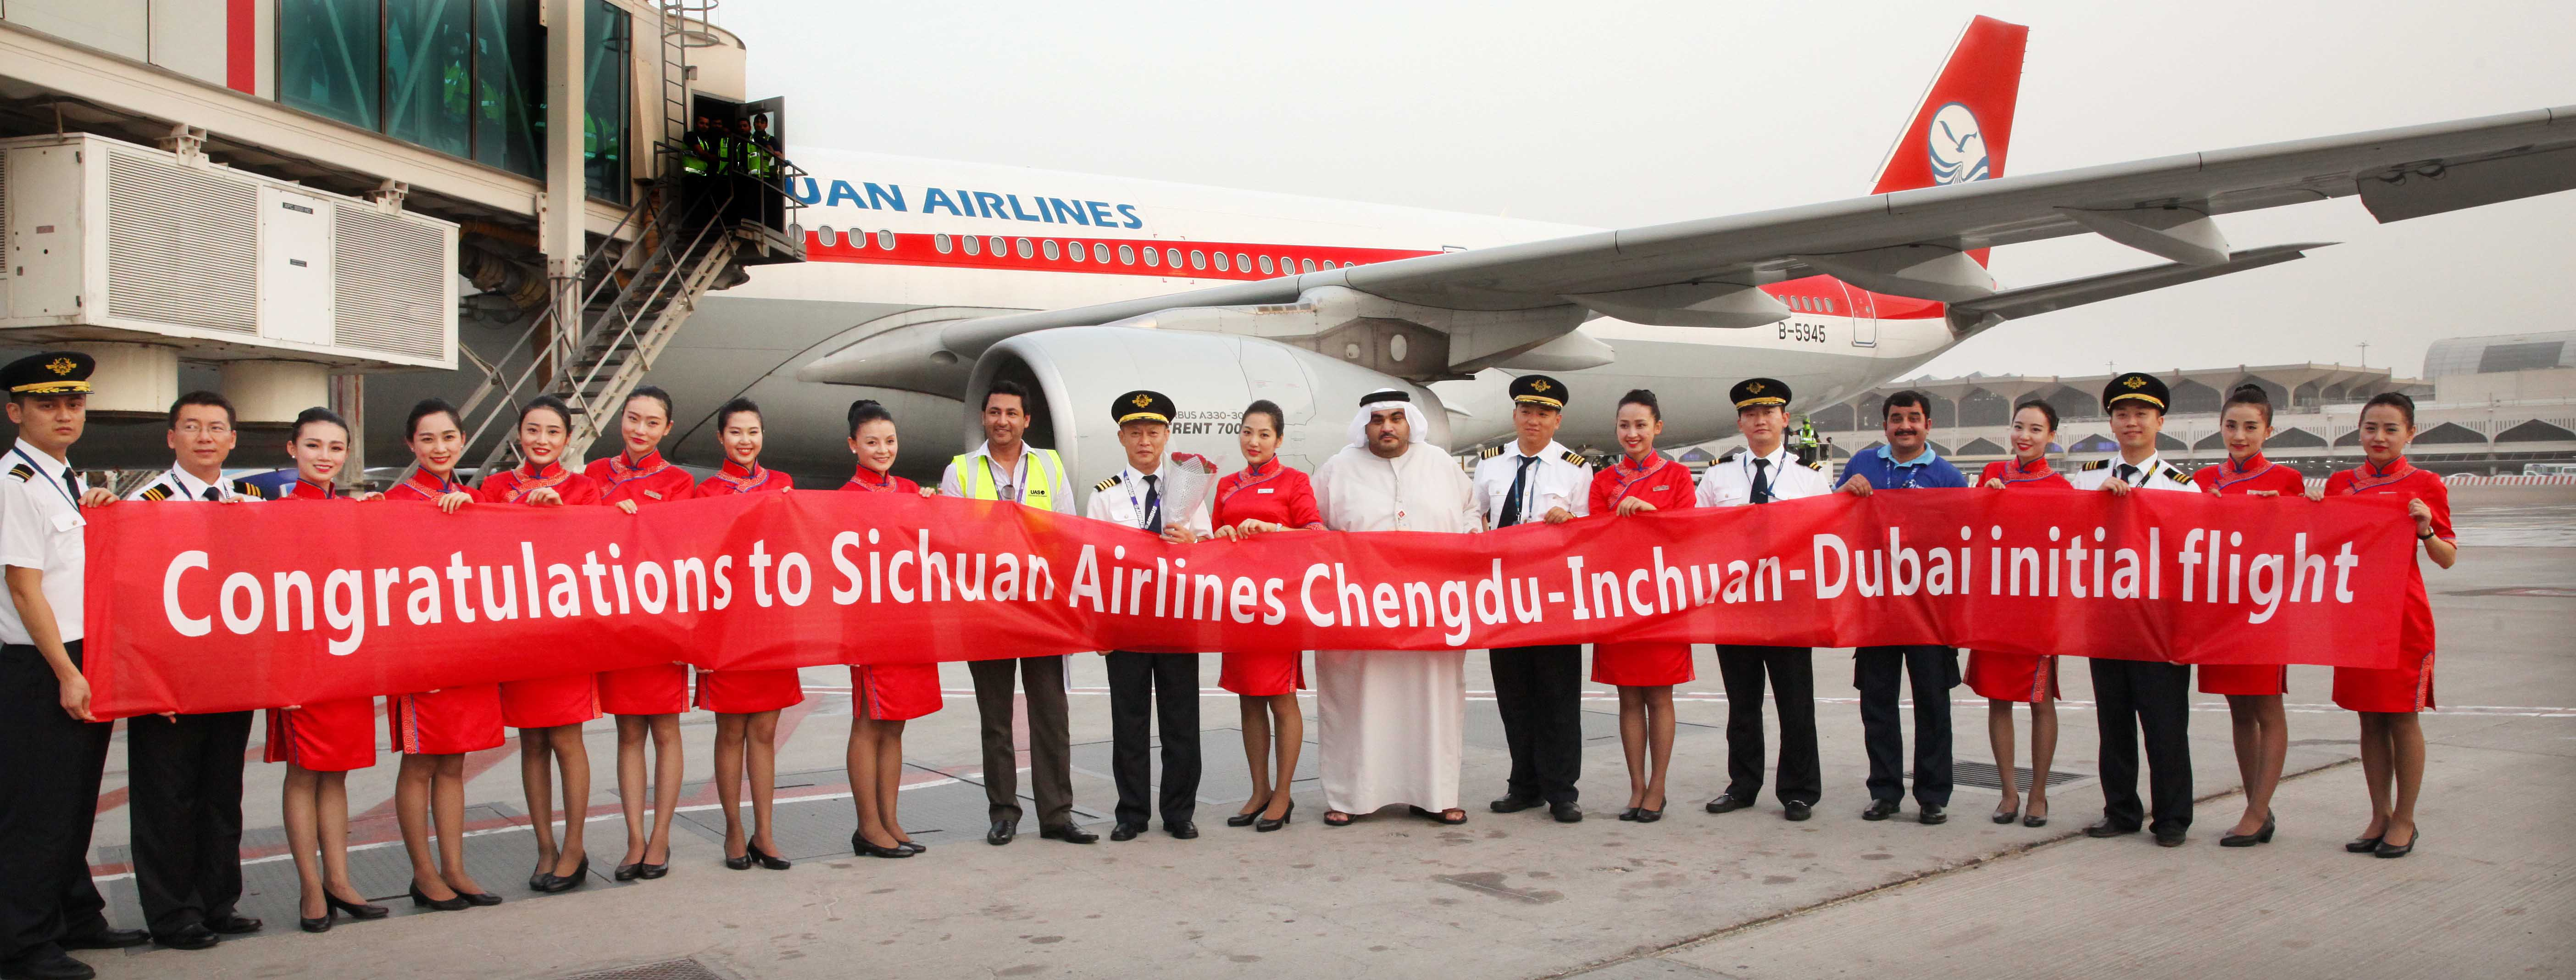 Sichuan Airlines Begins Flights To Dubai